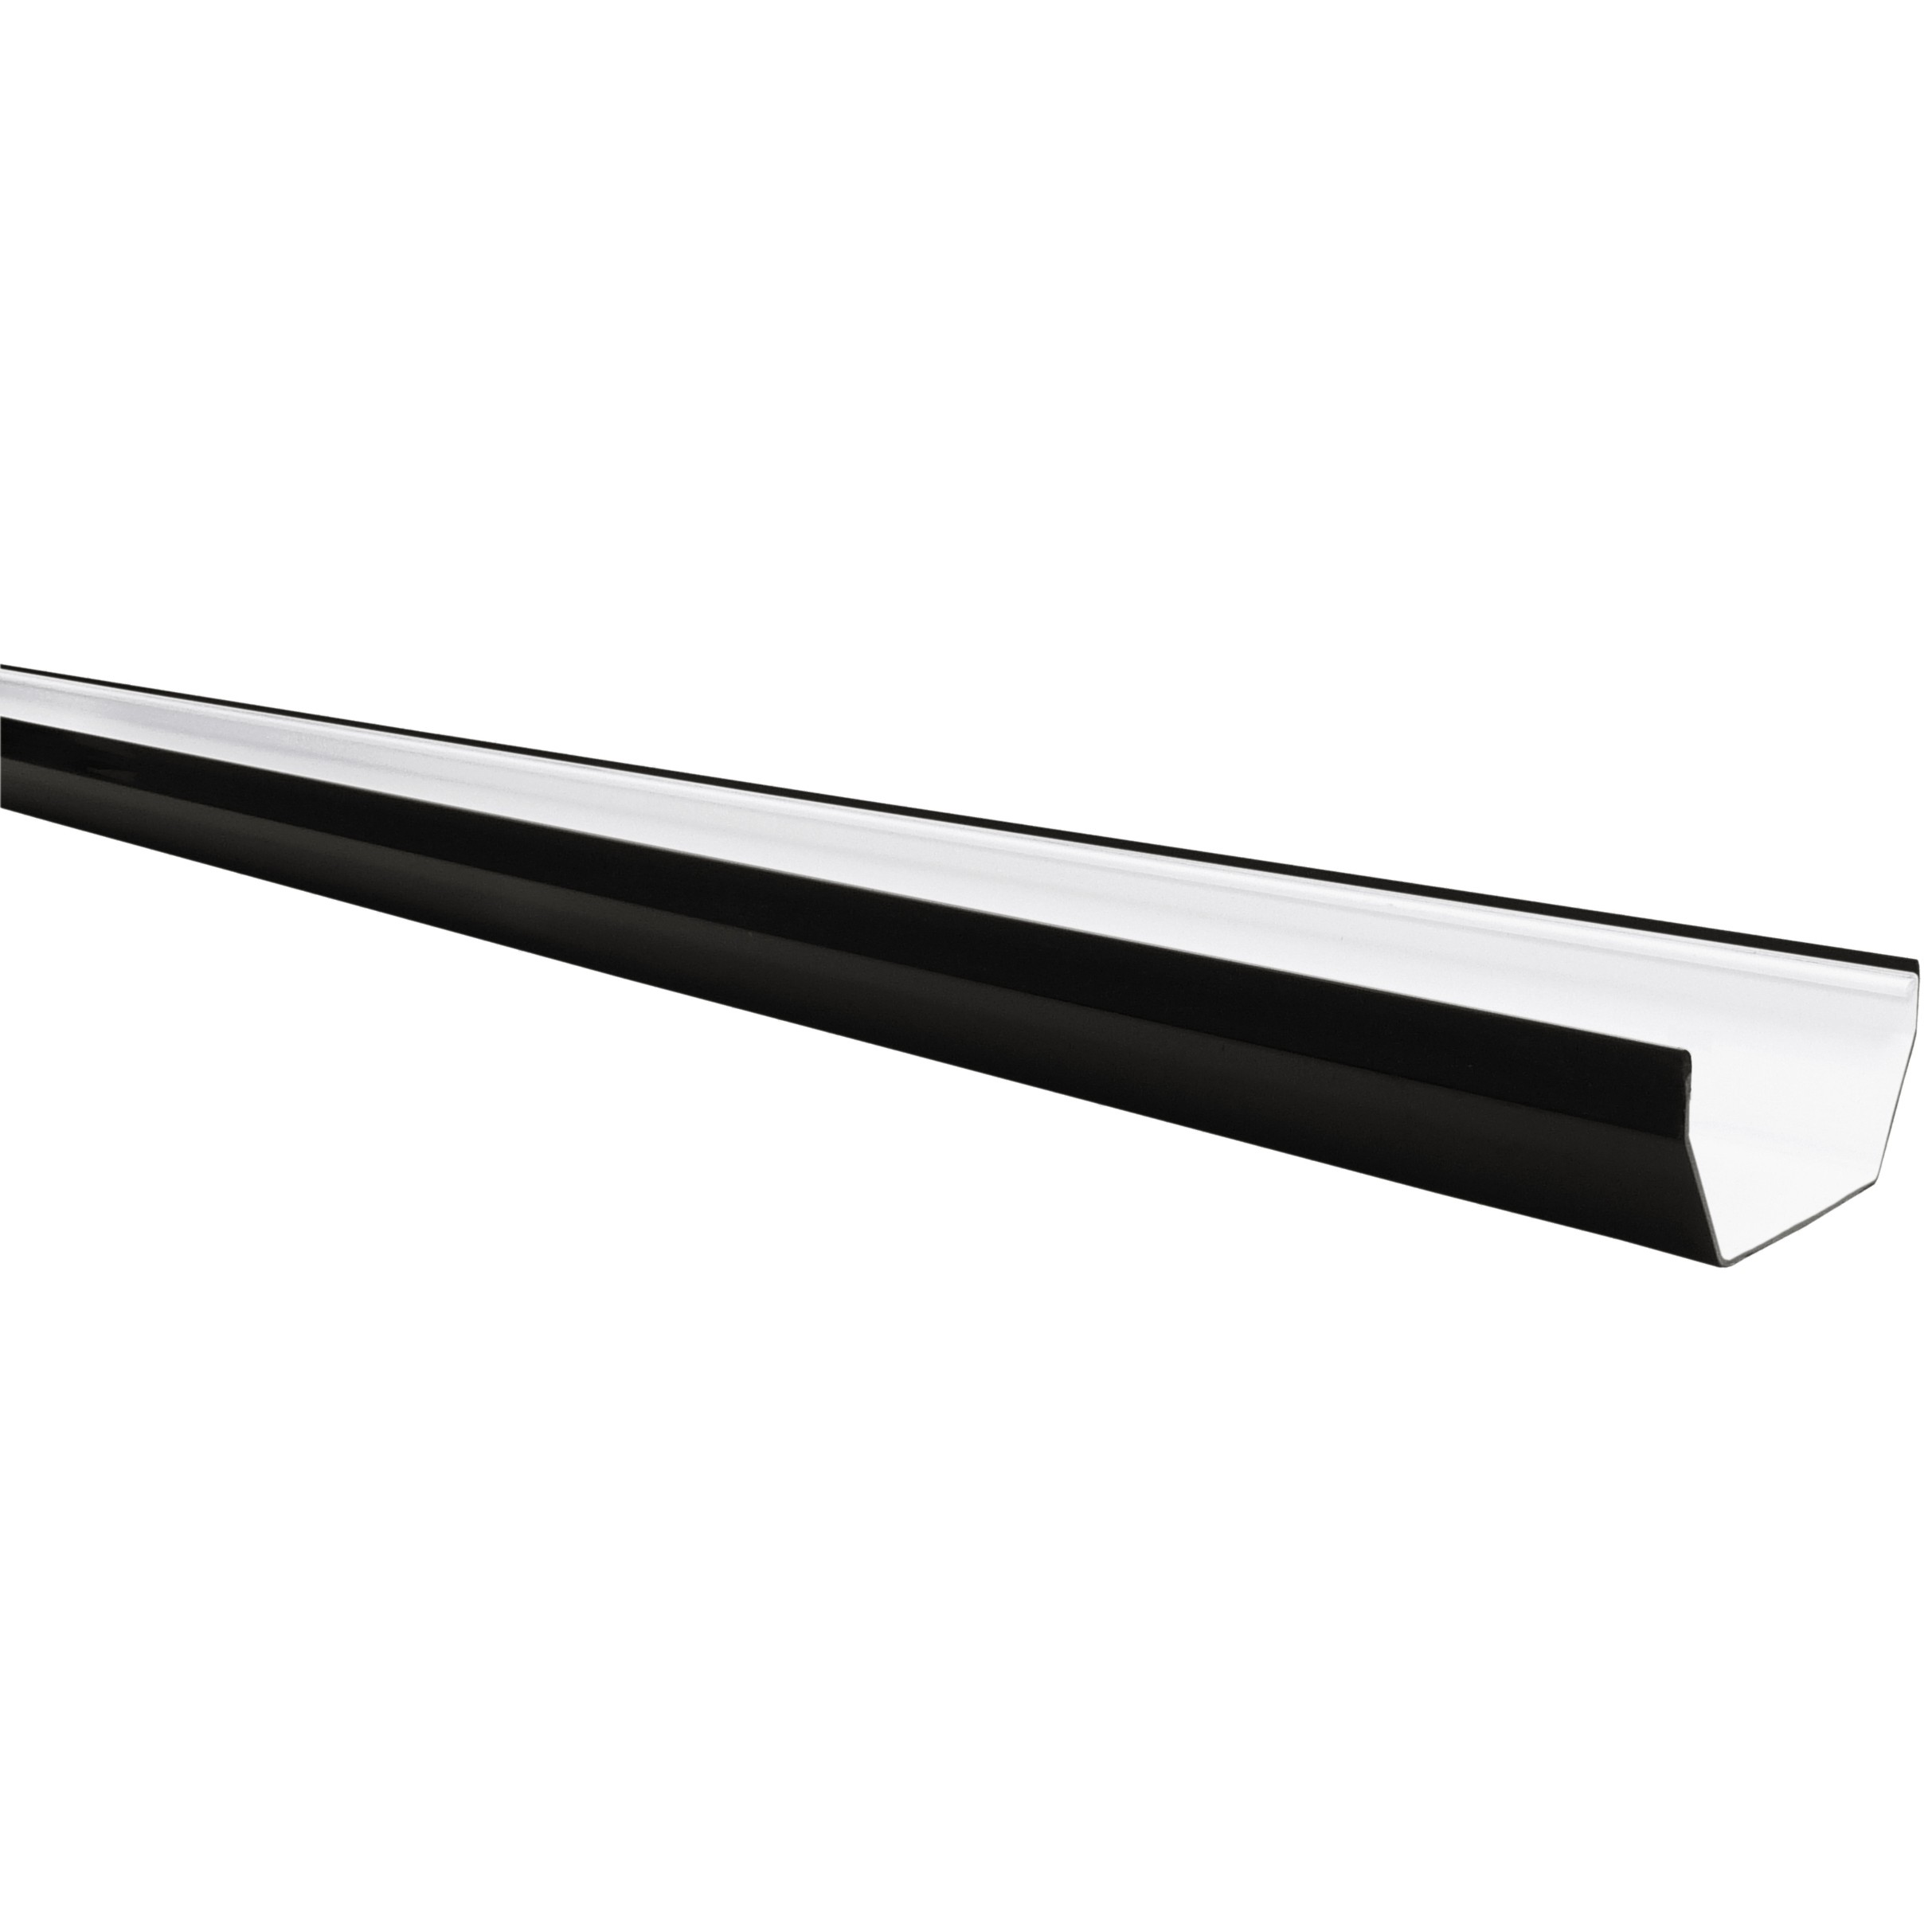 Freeflow 114mm Square Gutter - Black, 4 metre